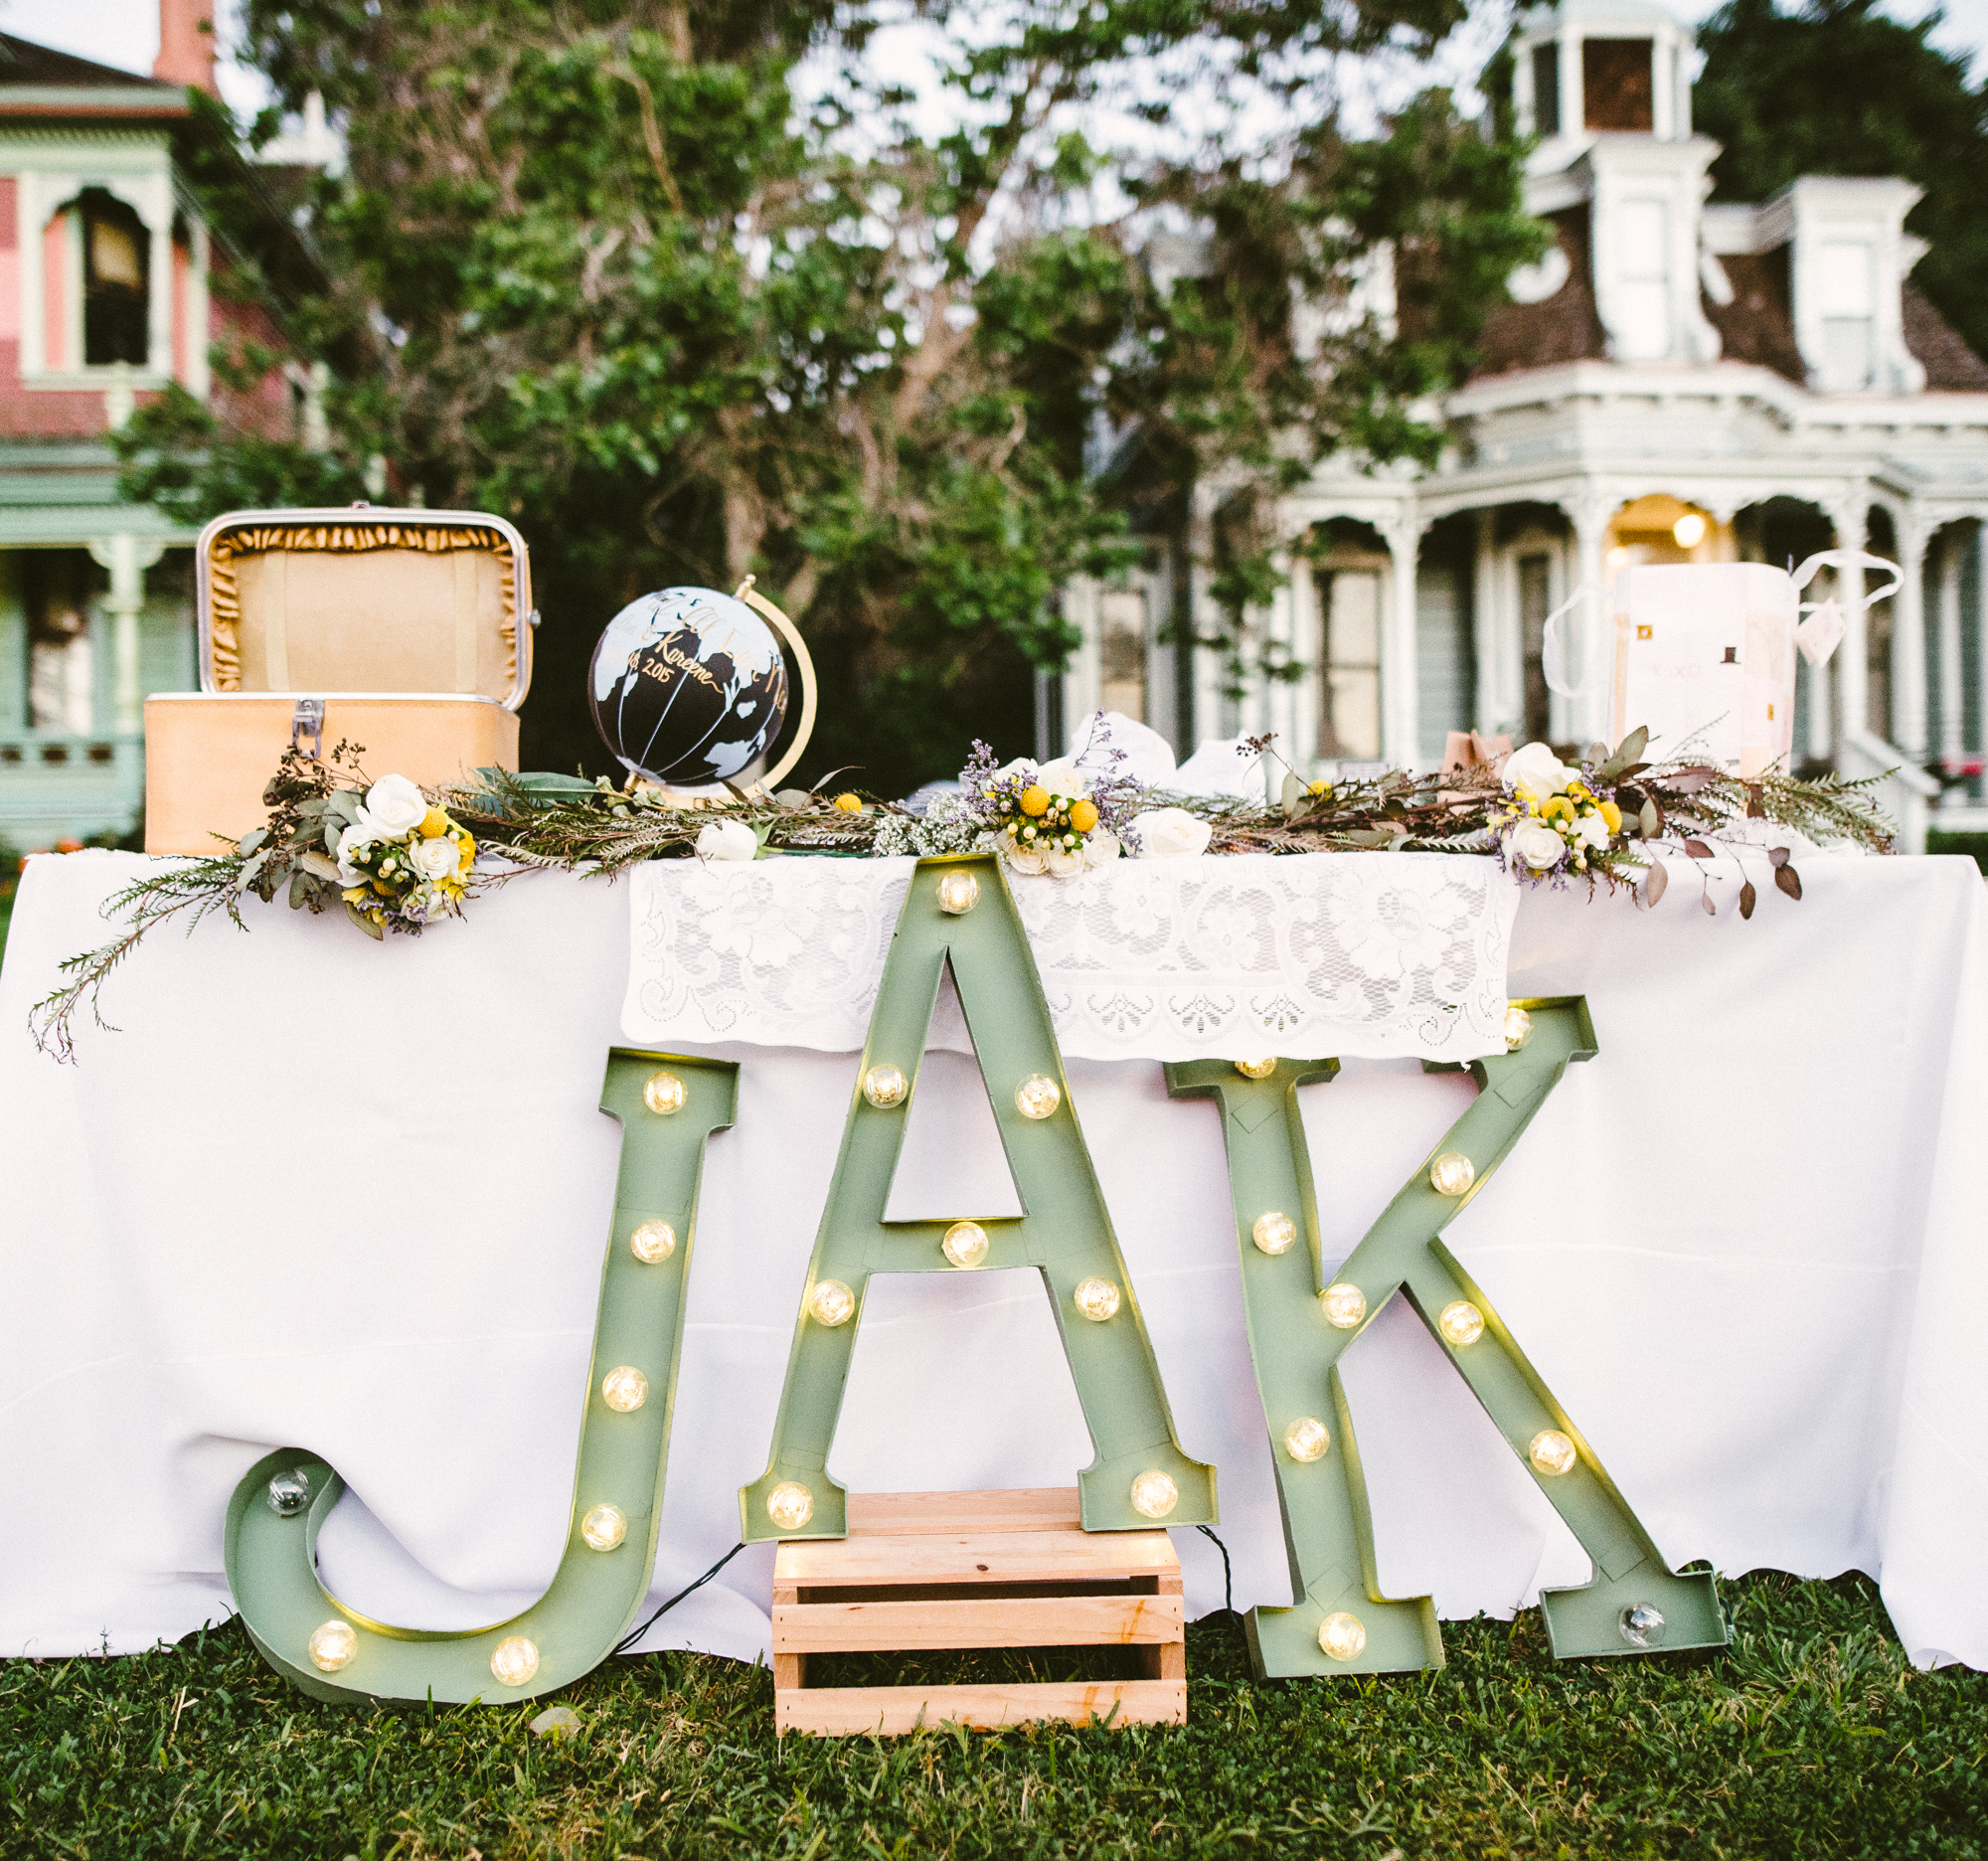 Isaiah & Taylor Photography - Los Angeles - Destination Wedding Photographers - Heritage Square Museum -87.jpg